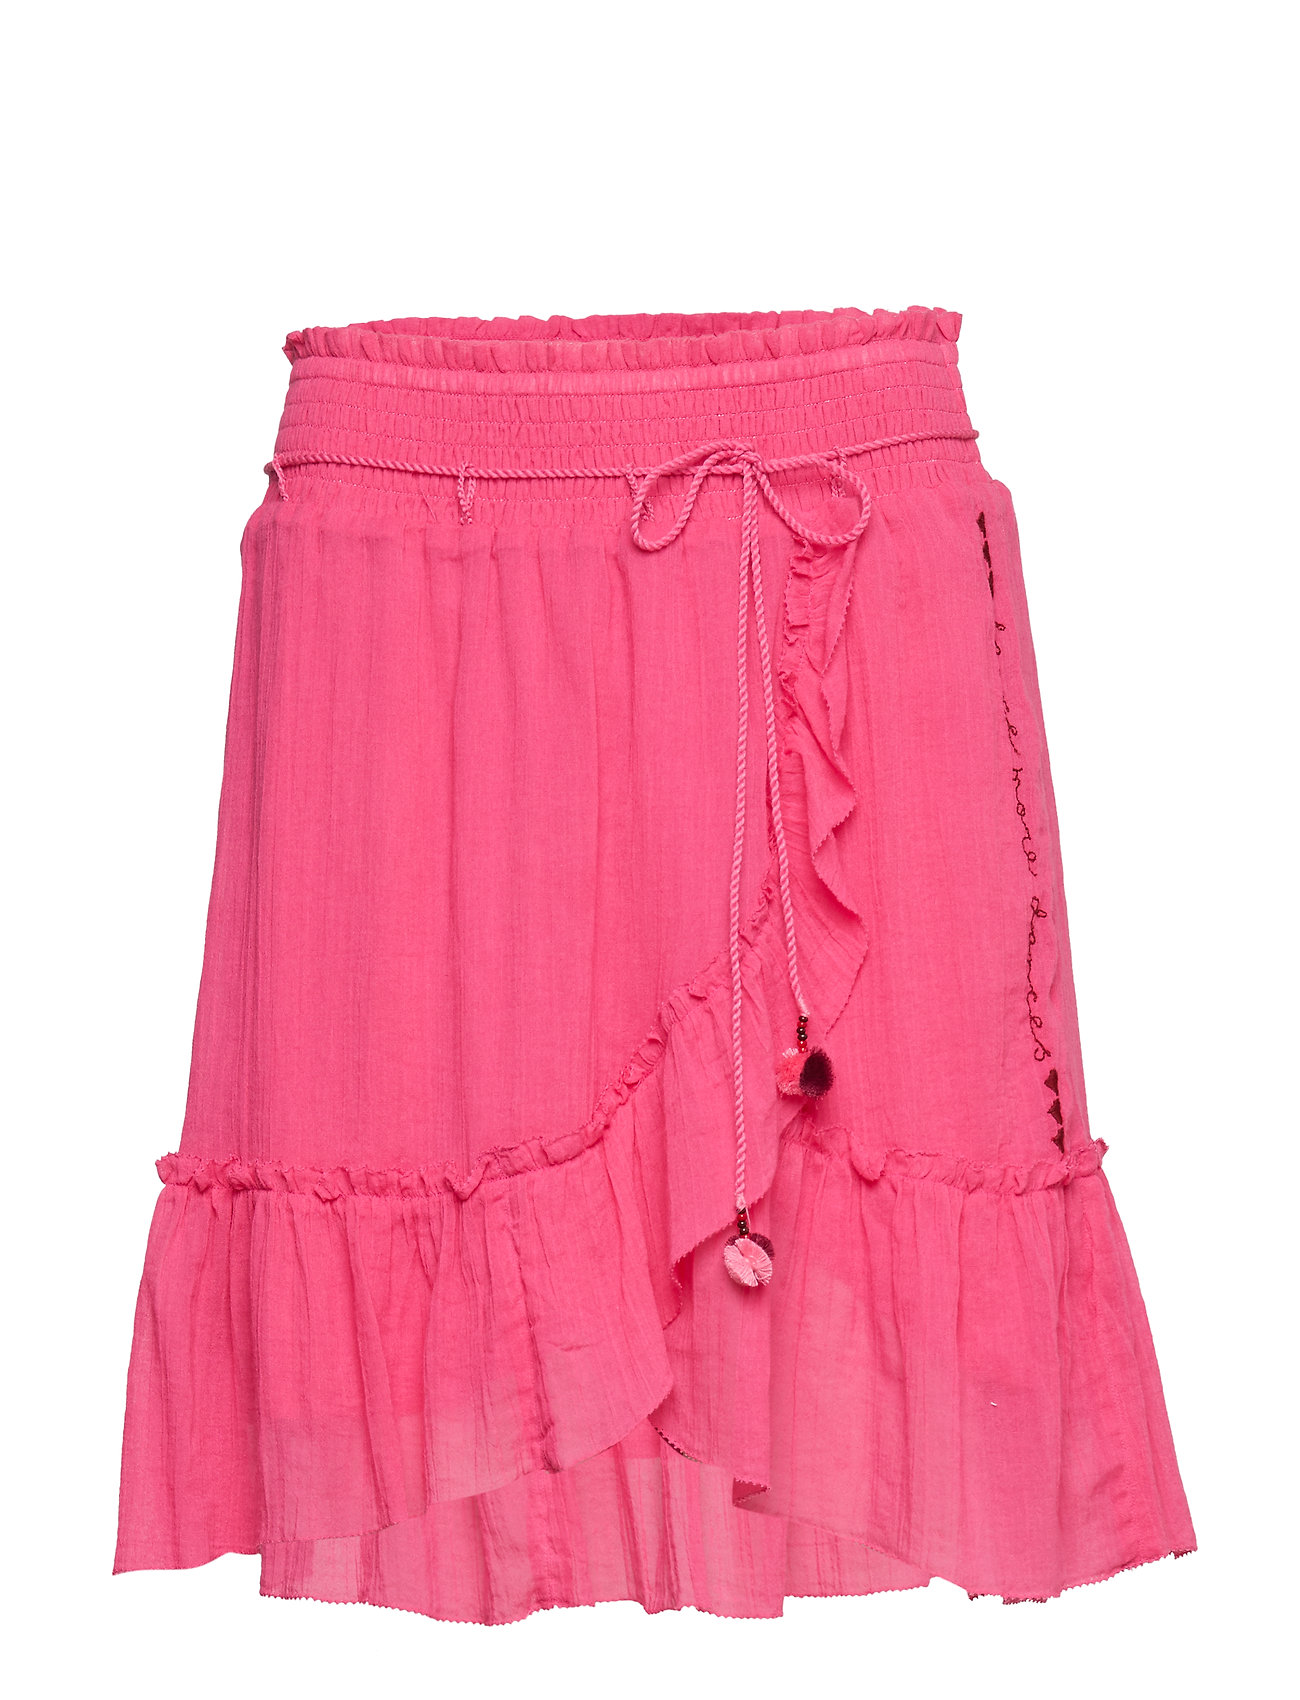 ODD MOLLY superflow skirt - HOT PINK